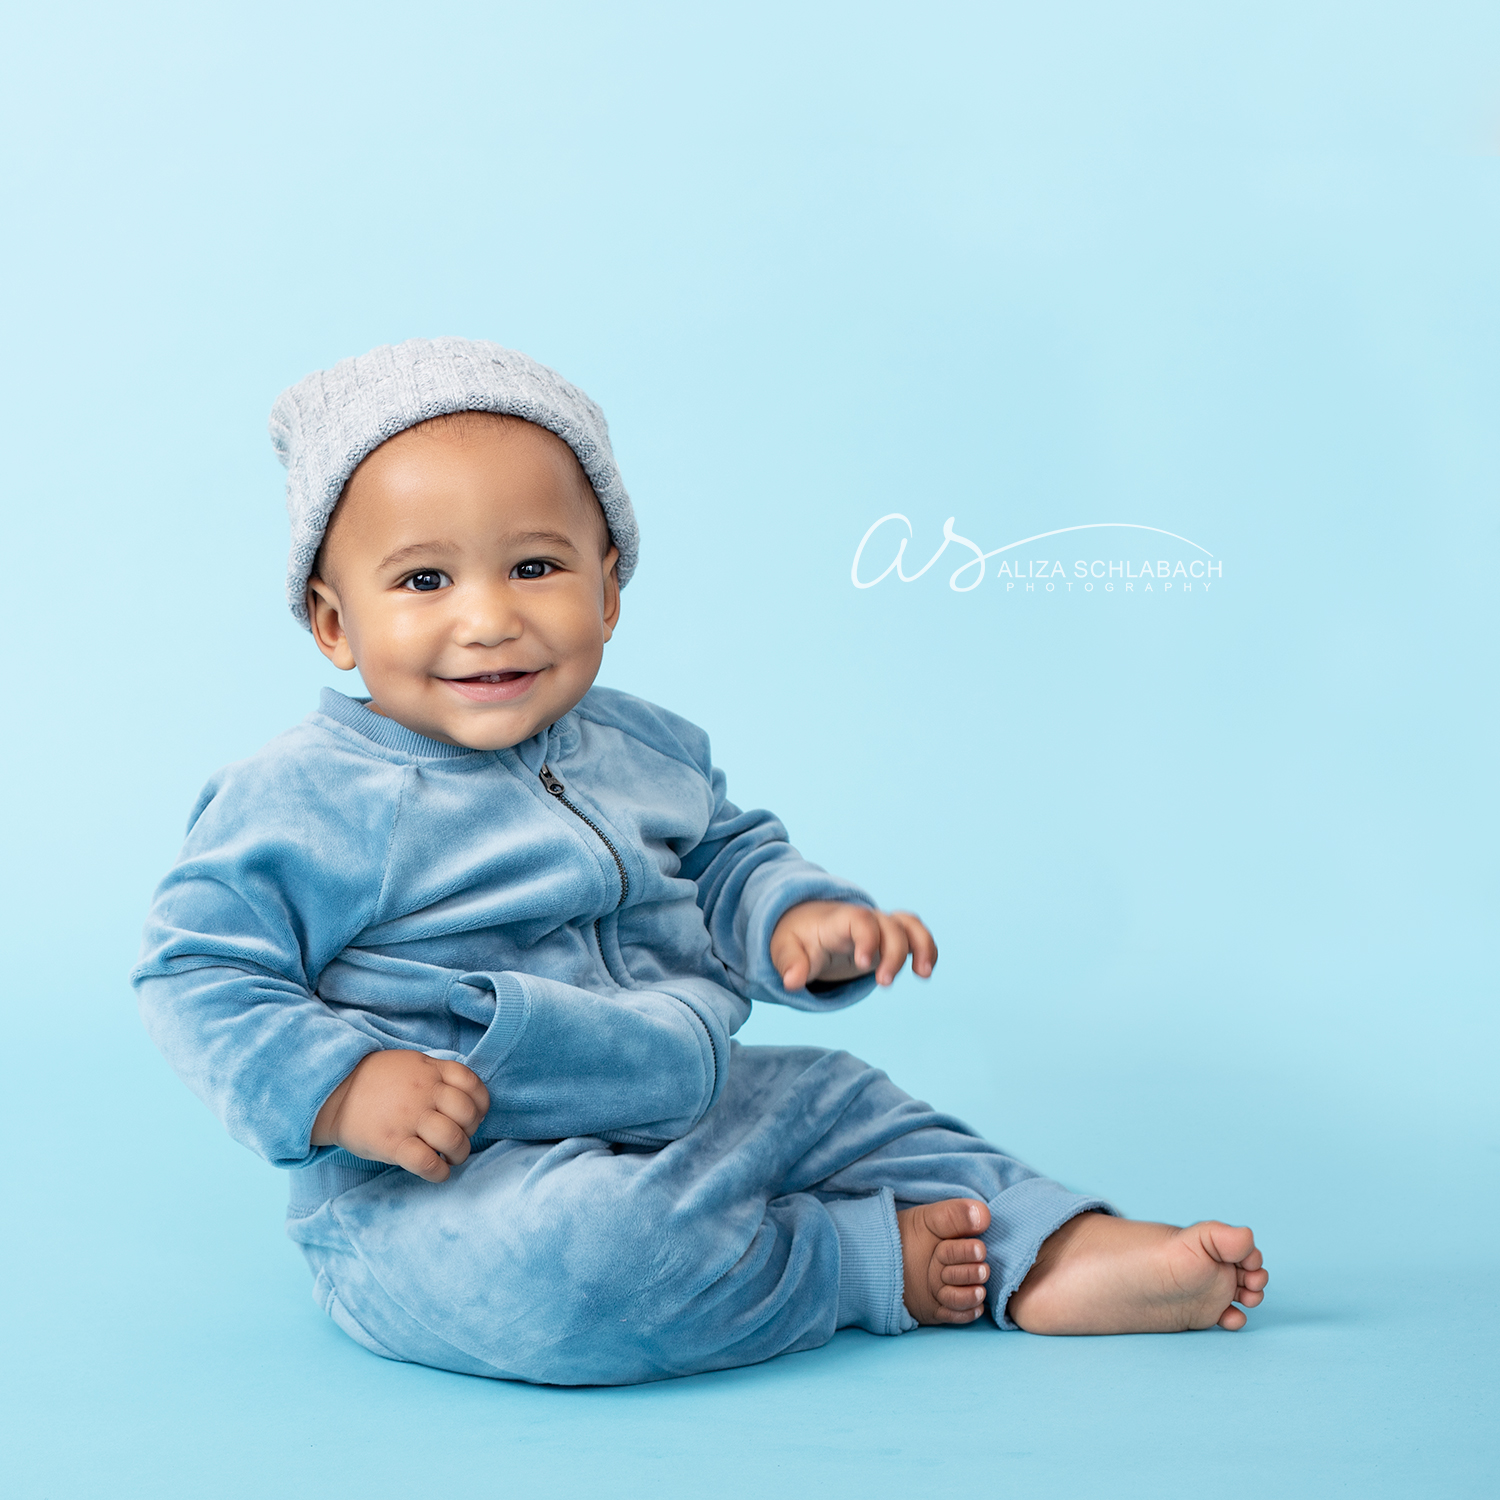 Adorable black baby sitting up in a blue track suit and hat